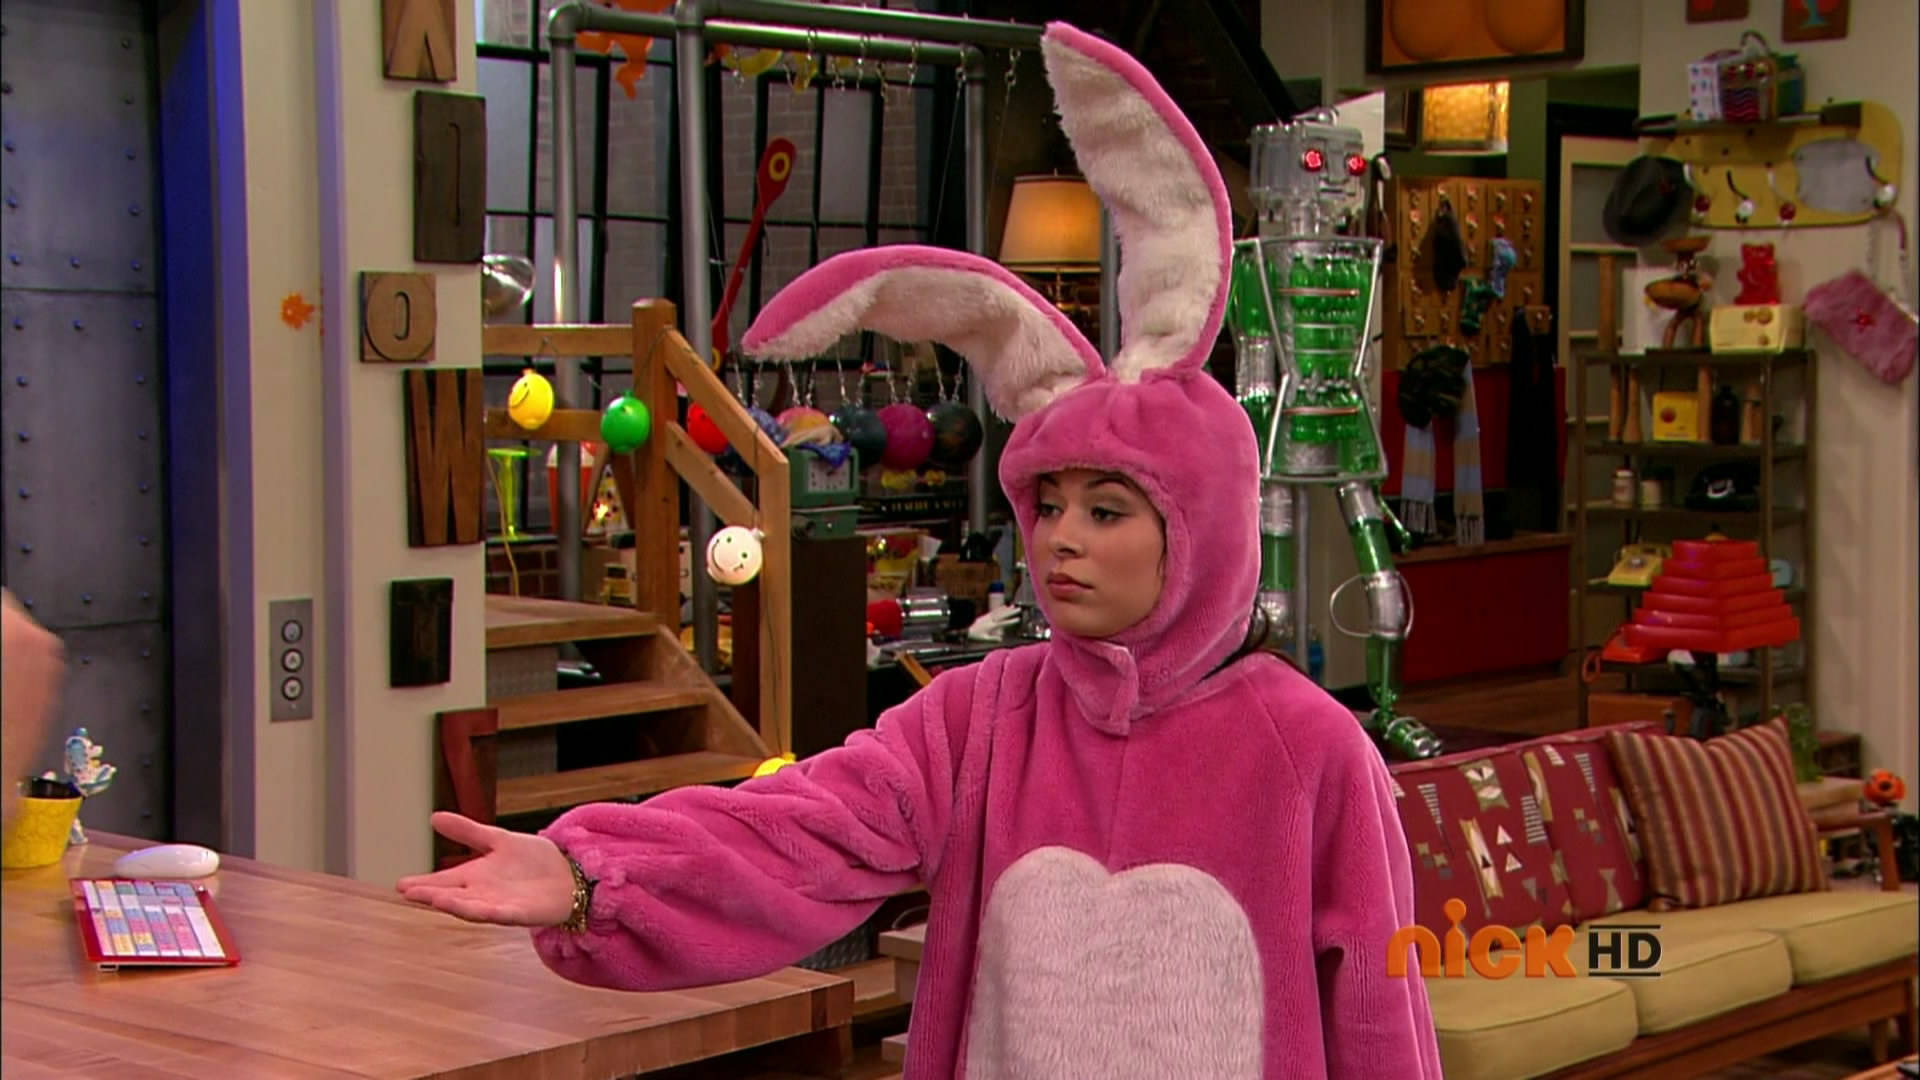 ICarly Computer Wallpapers, Desktop Backgrounds | 1920x1080 | ID ...